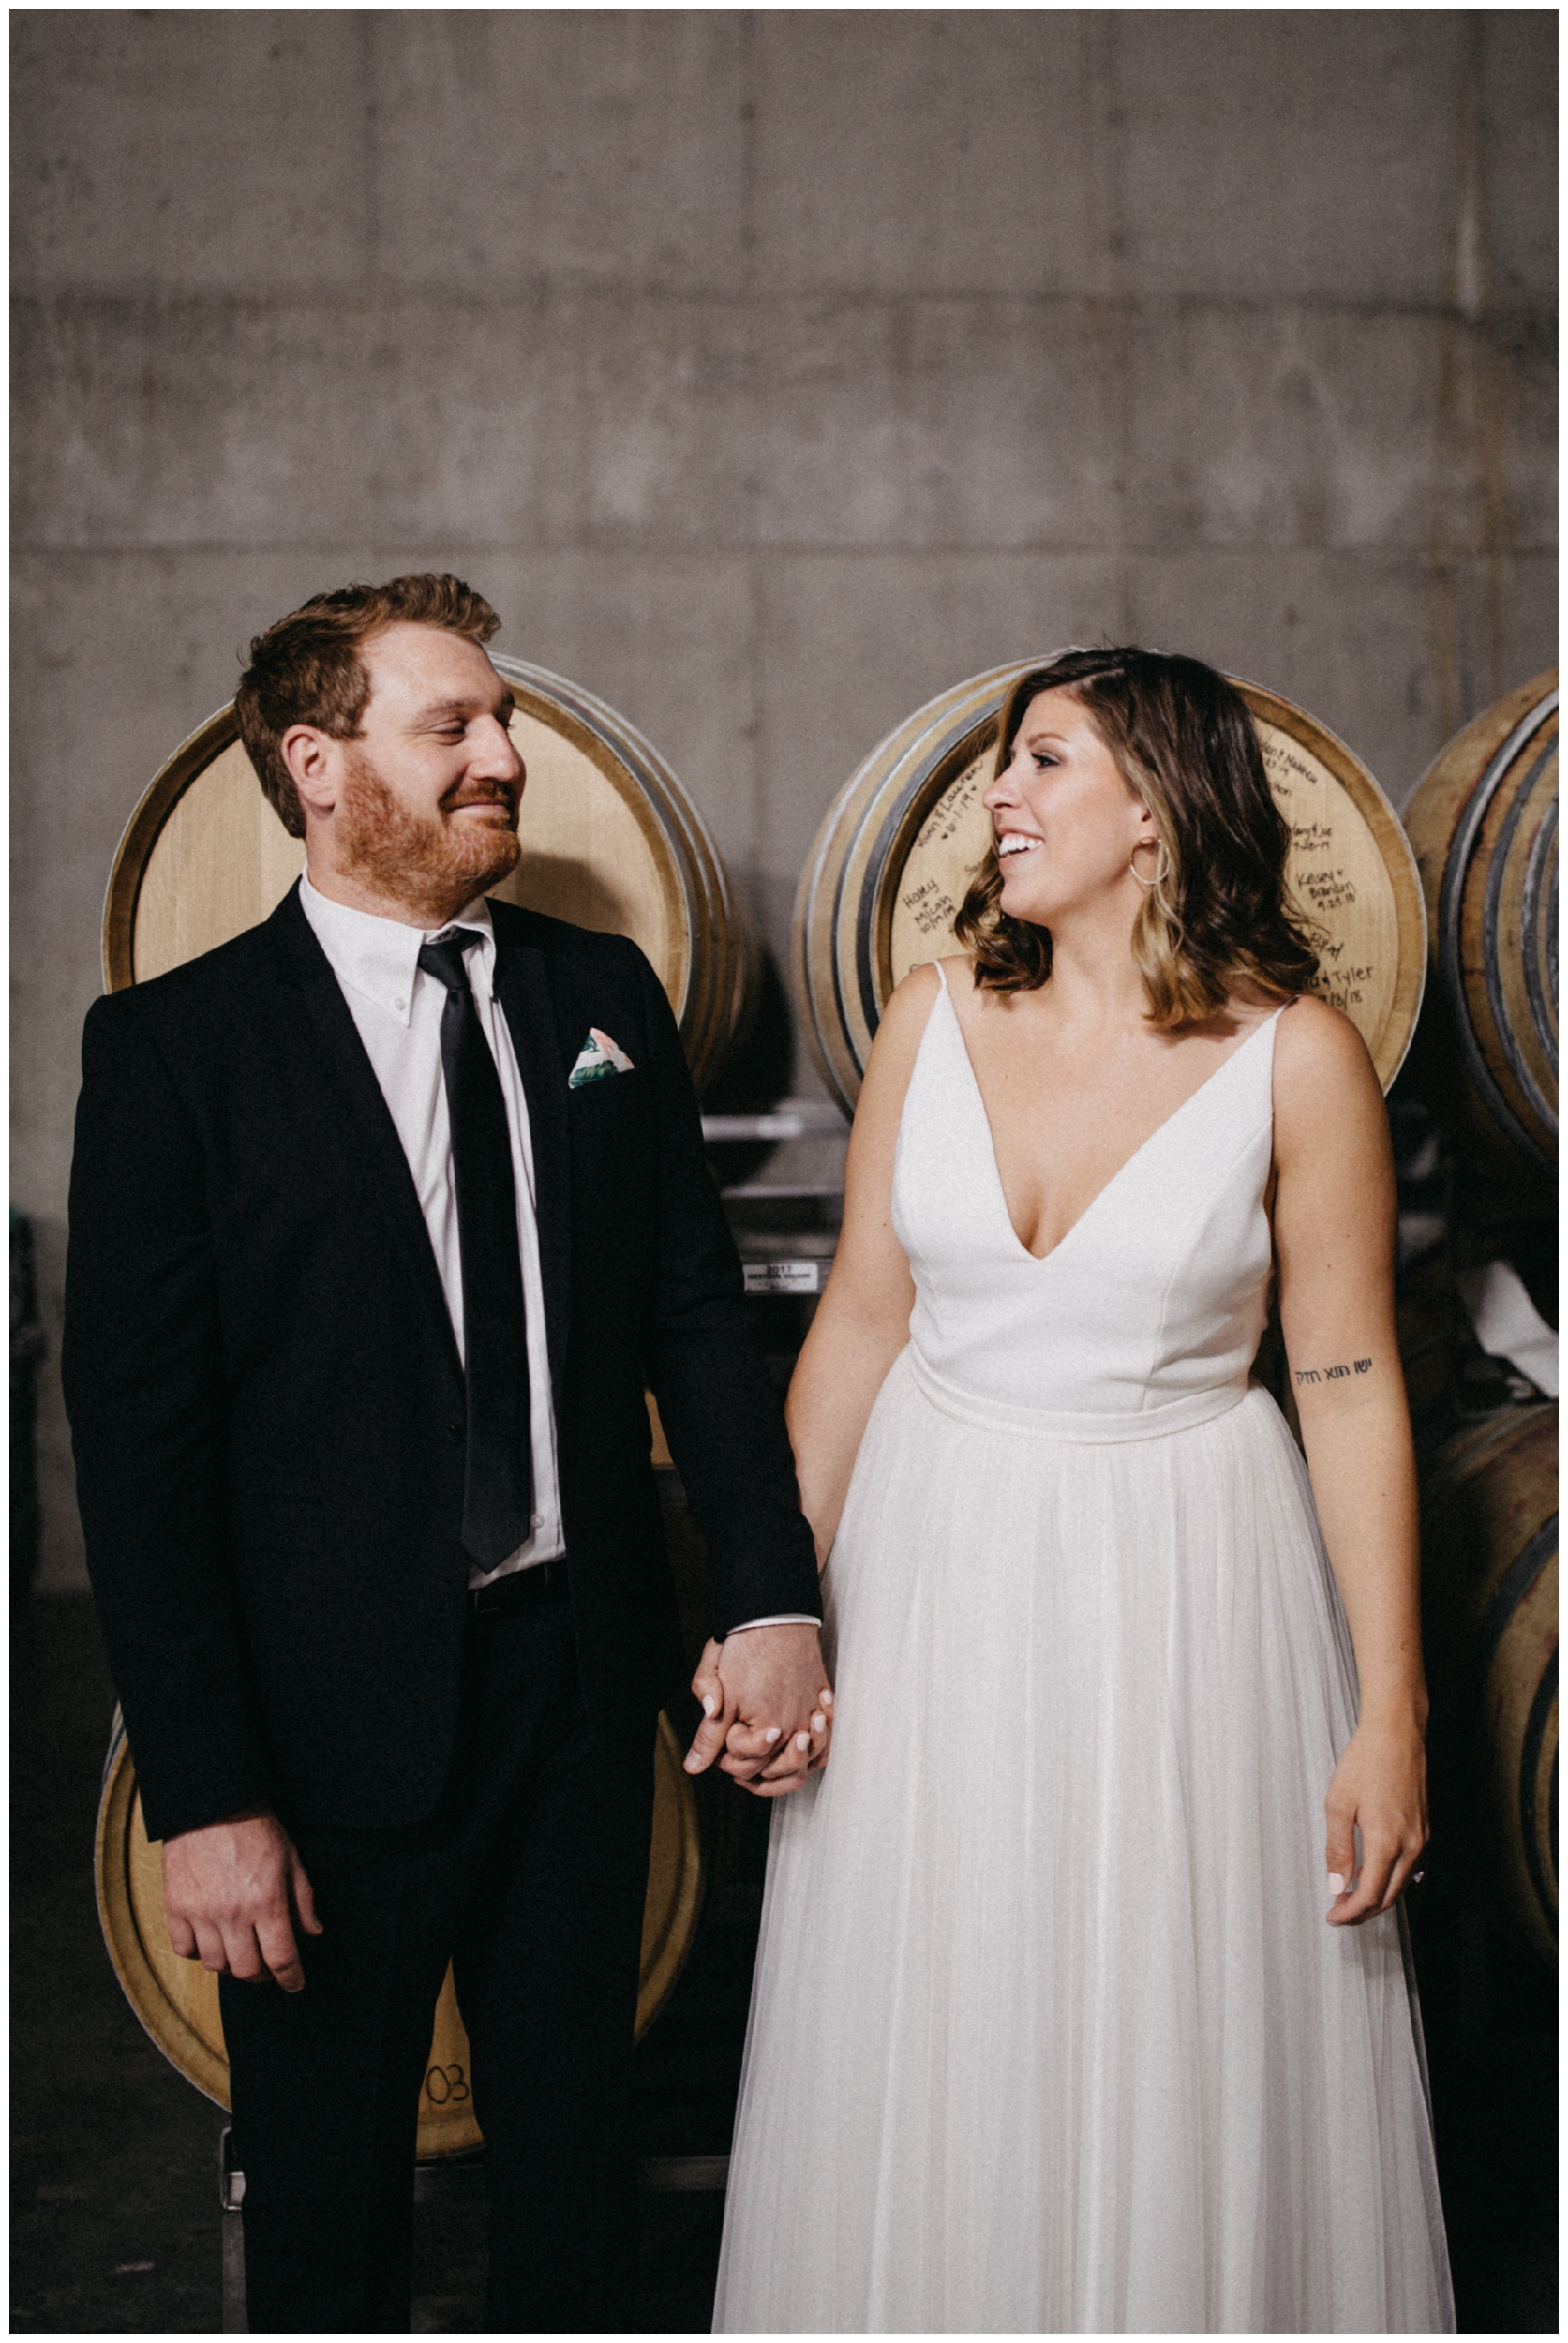 Winery wedding in Dellwood Minnesota